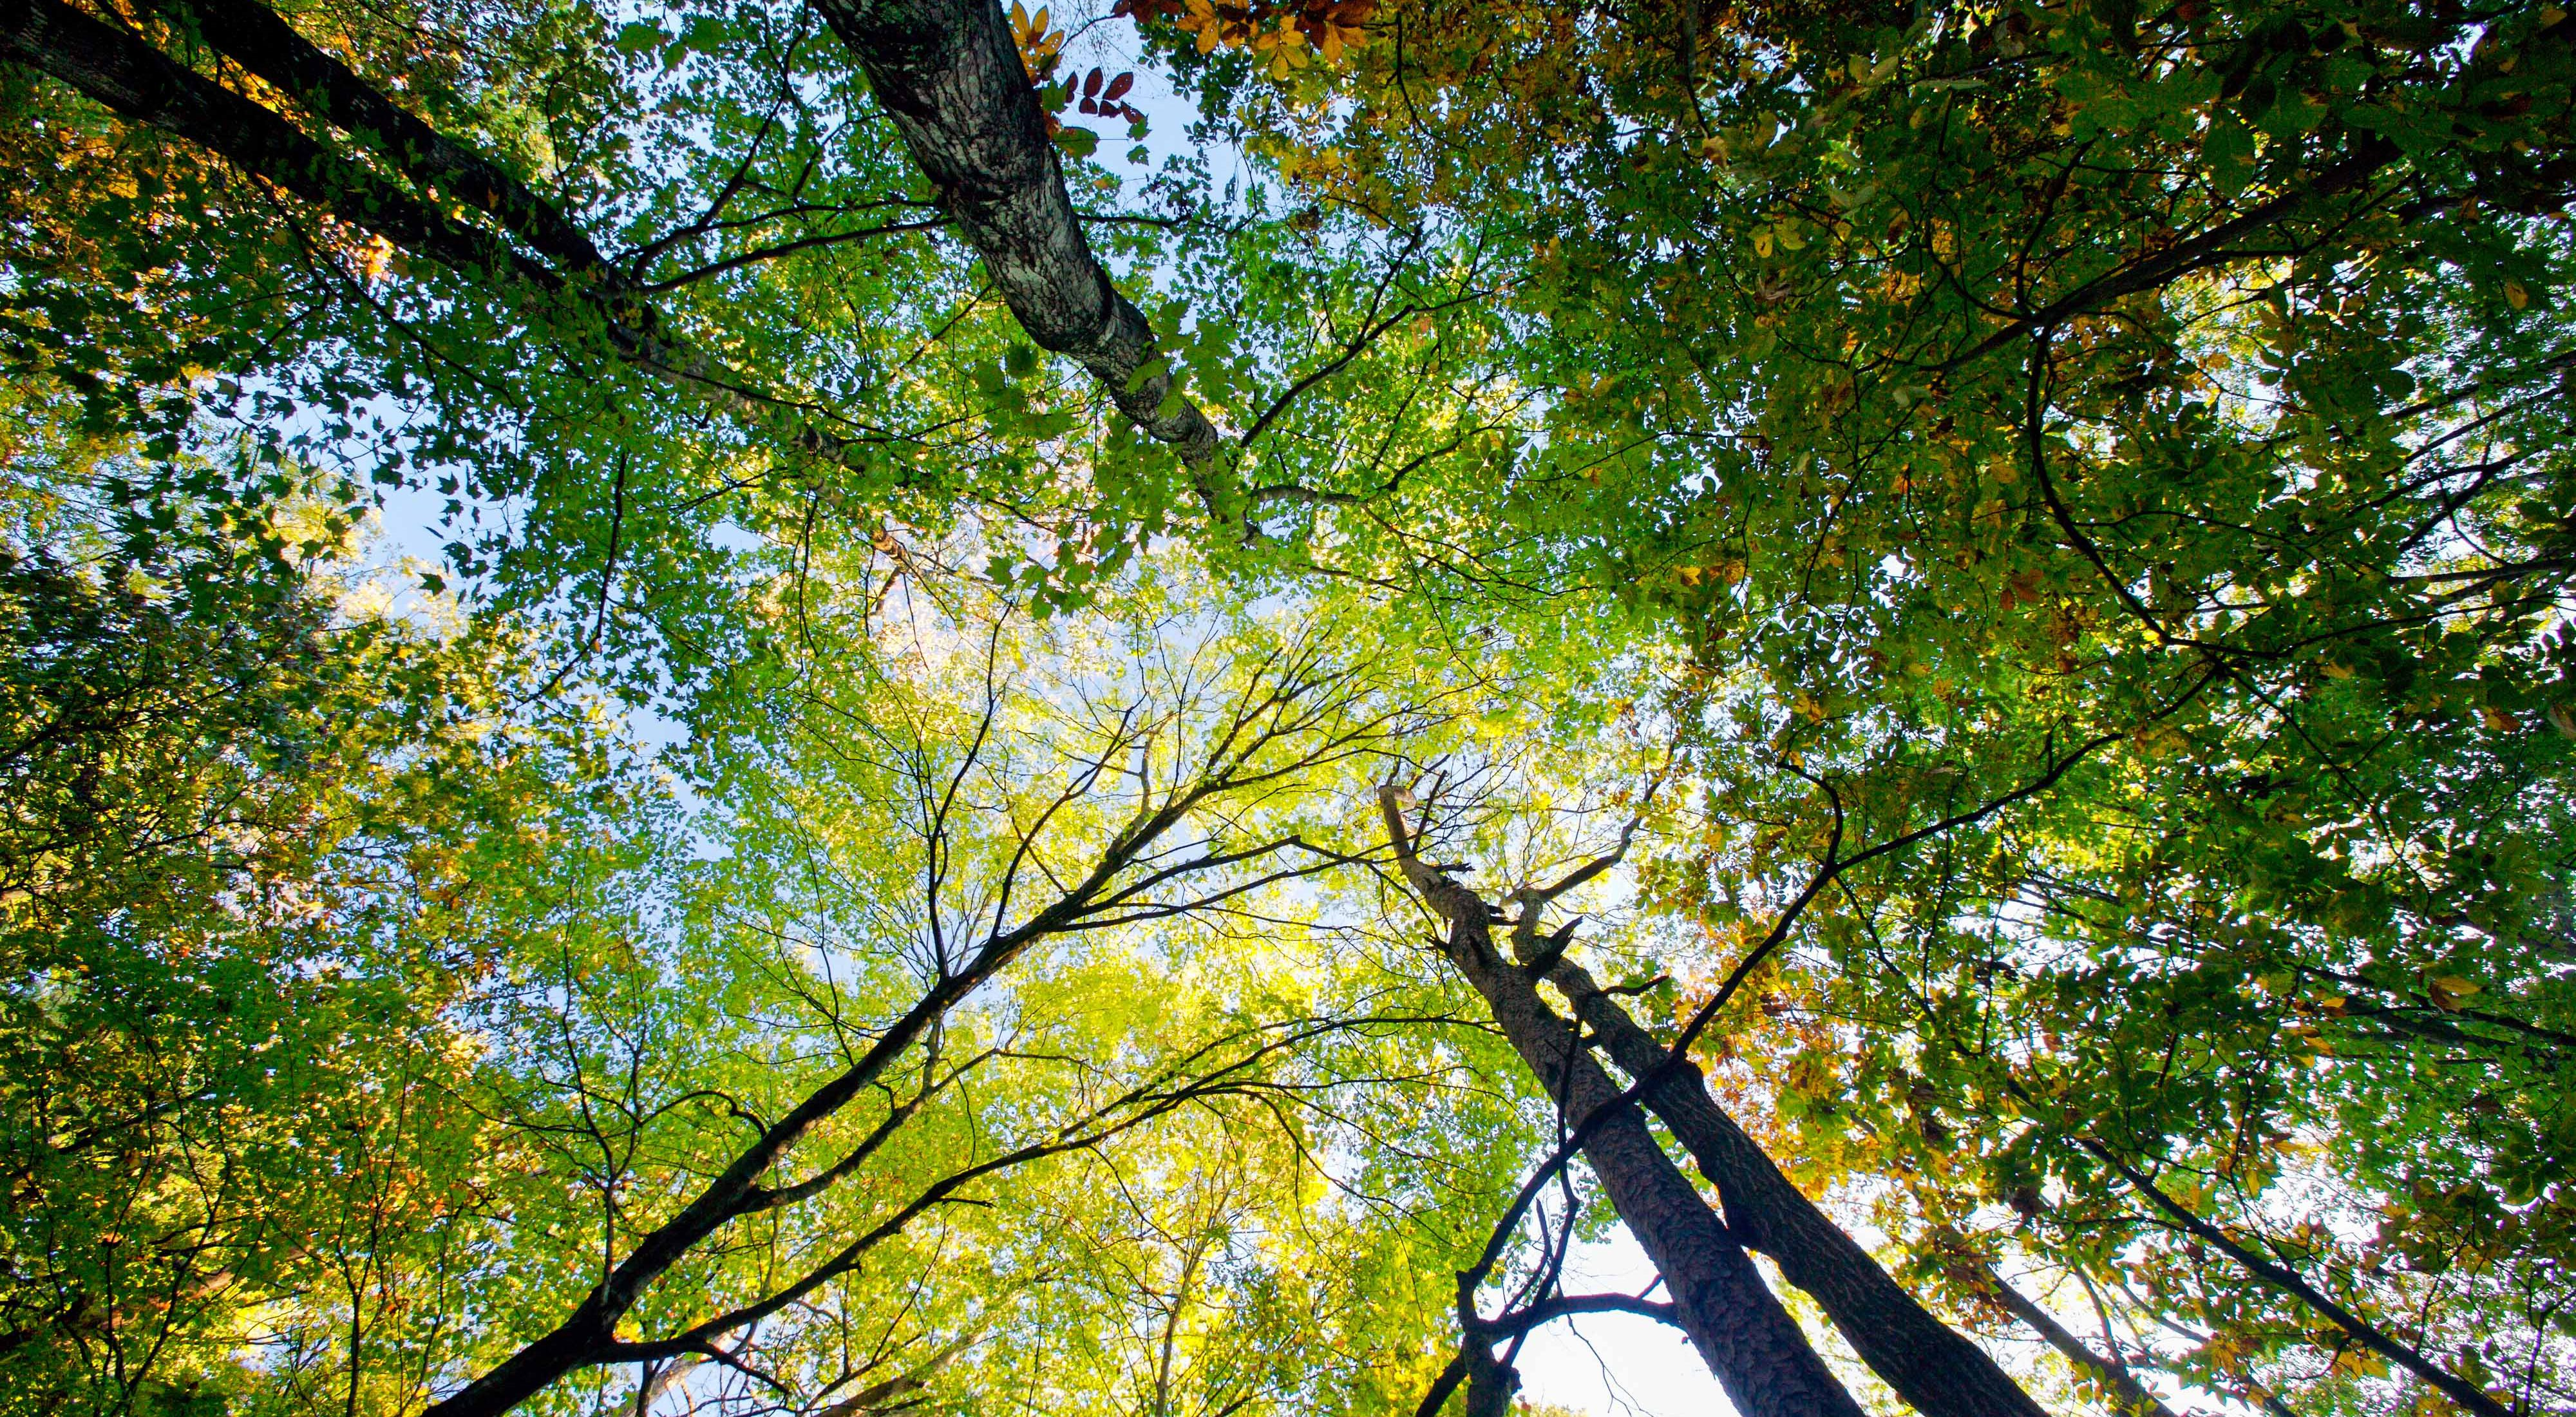 Looking upward into the canopy of southern old-growth forest in Marshall Forest Preserve, Rome, Georgia.